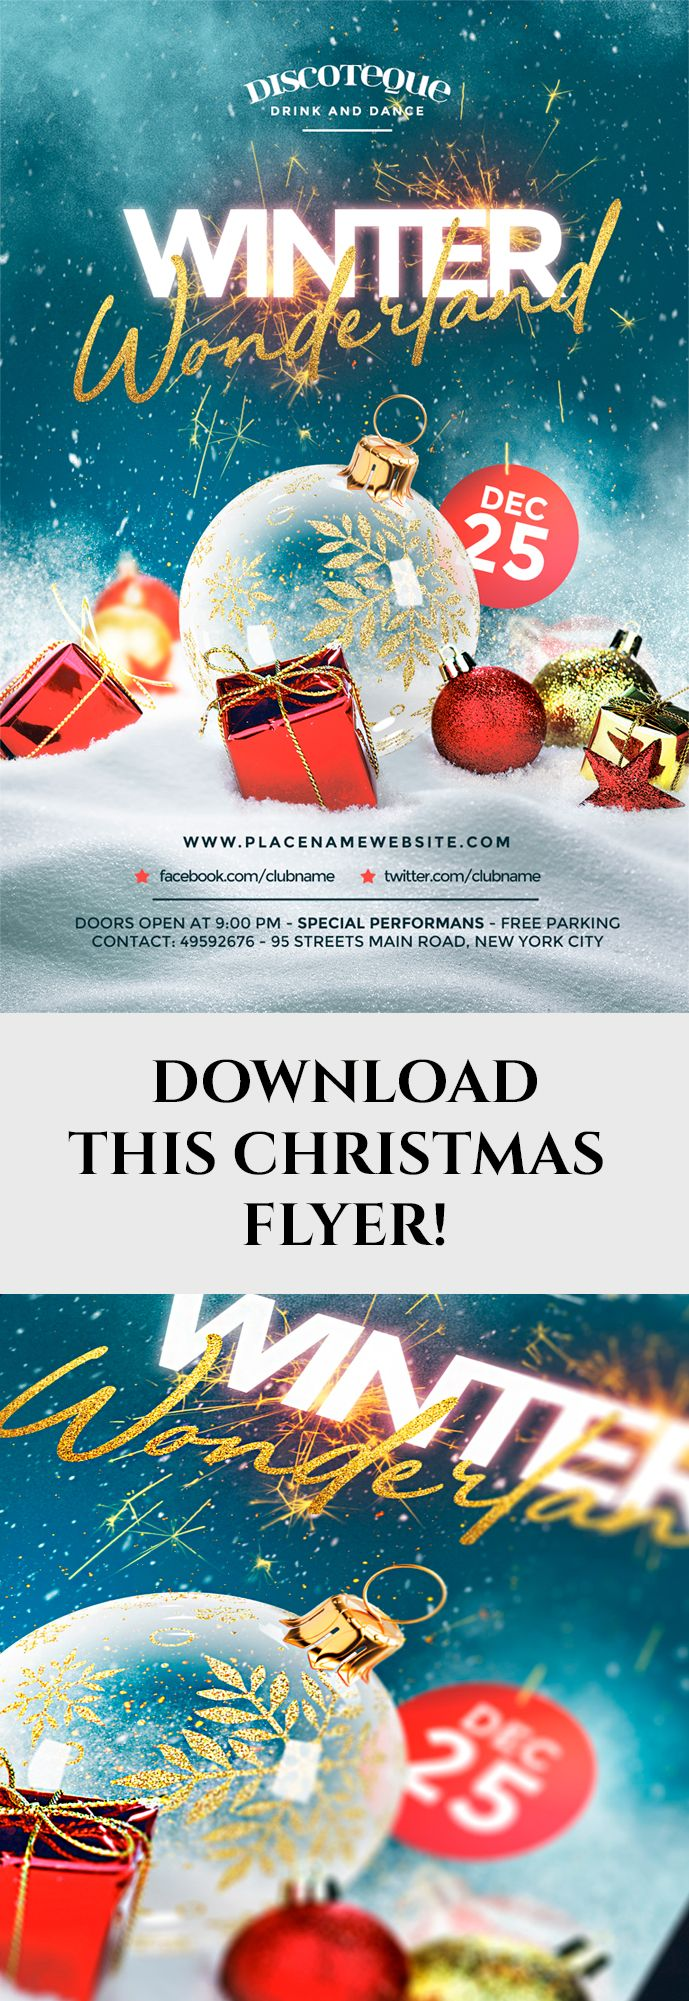 Christmas poster   backgrounds night party template december fb cover flyer gift holiday invitation #merry minimal new year nye party